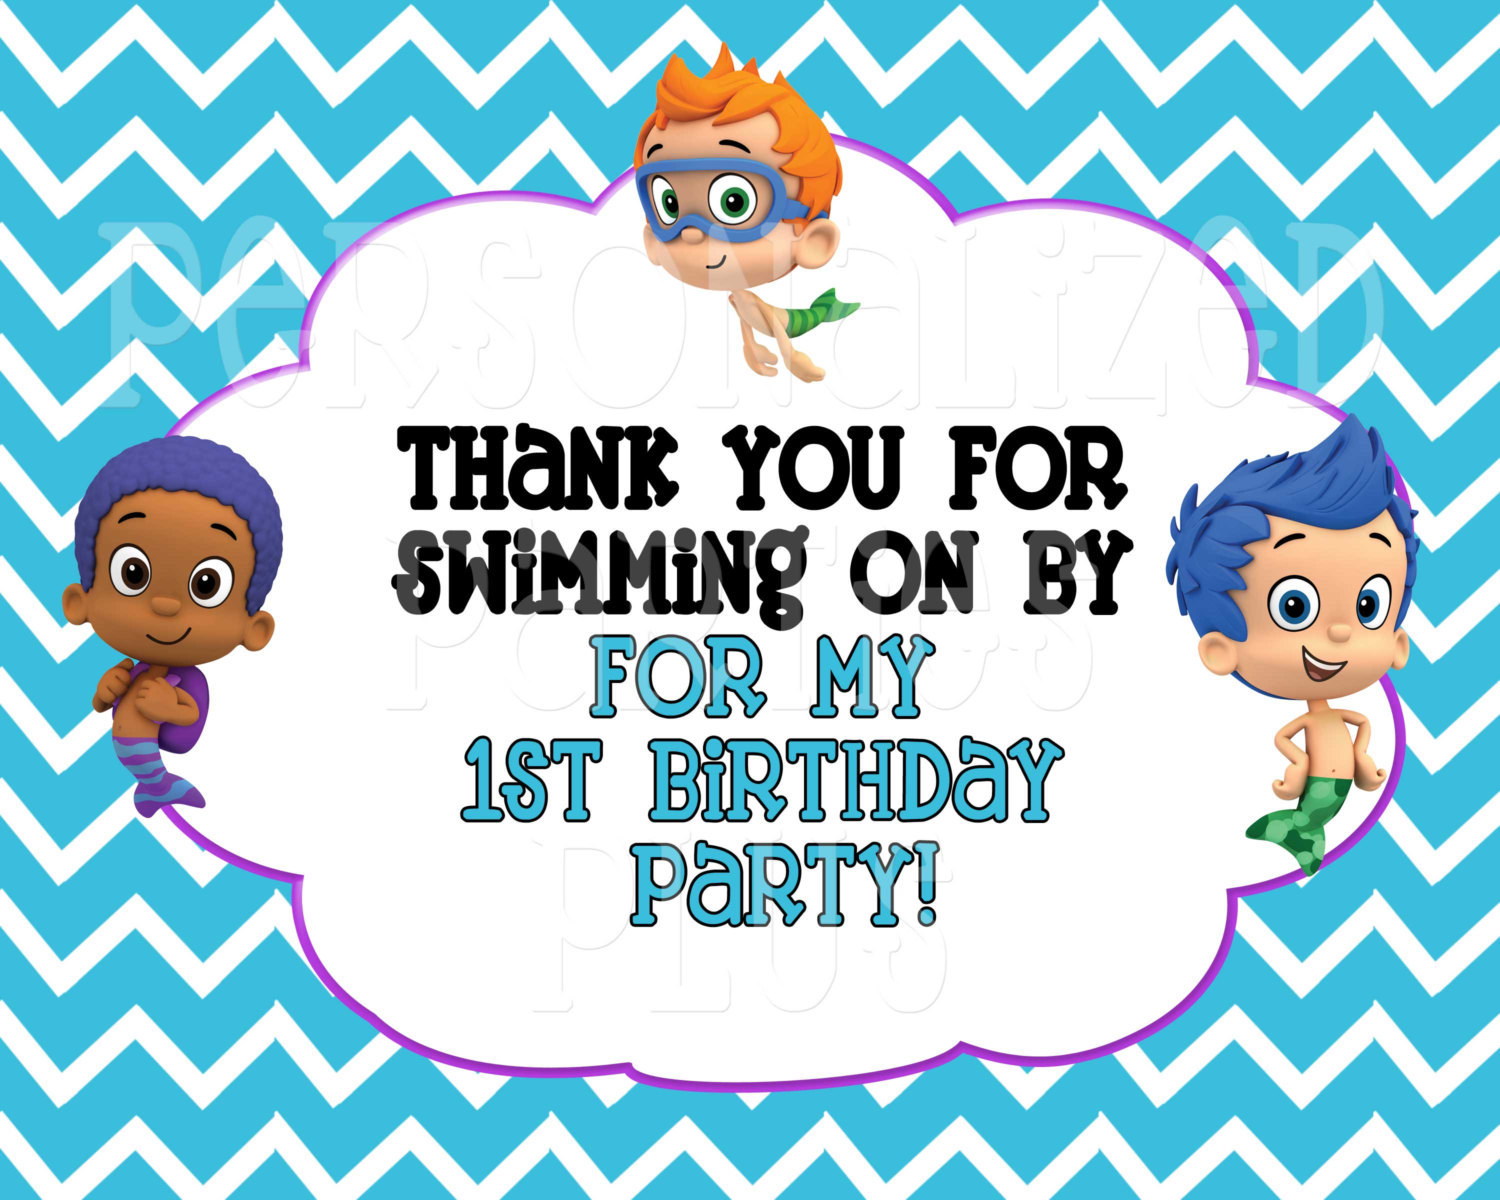 Bubble Guppie birthday sign: Thank you fro swimming on by